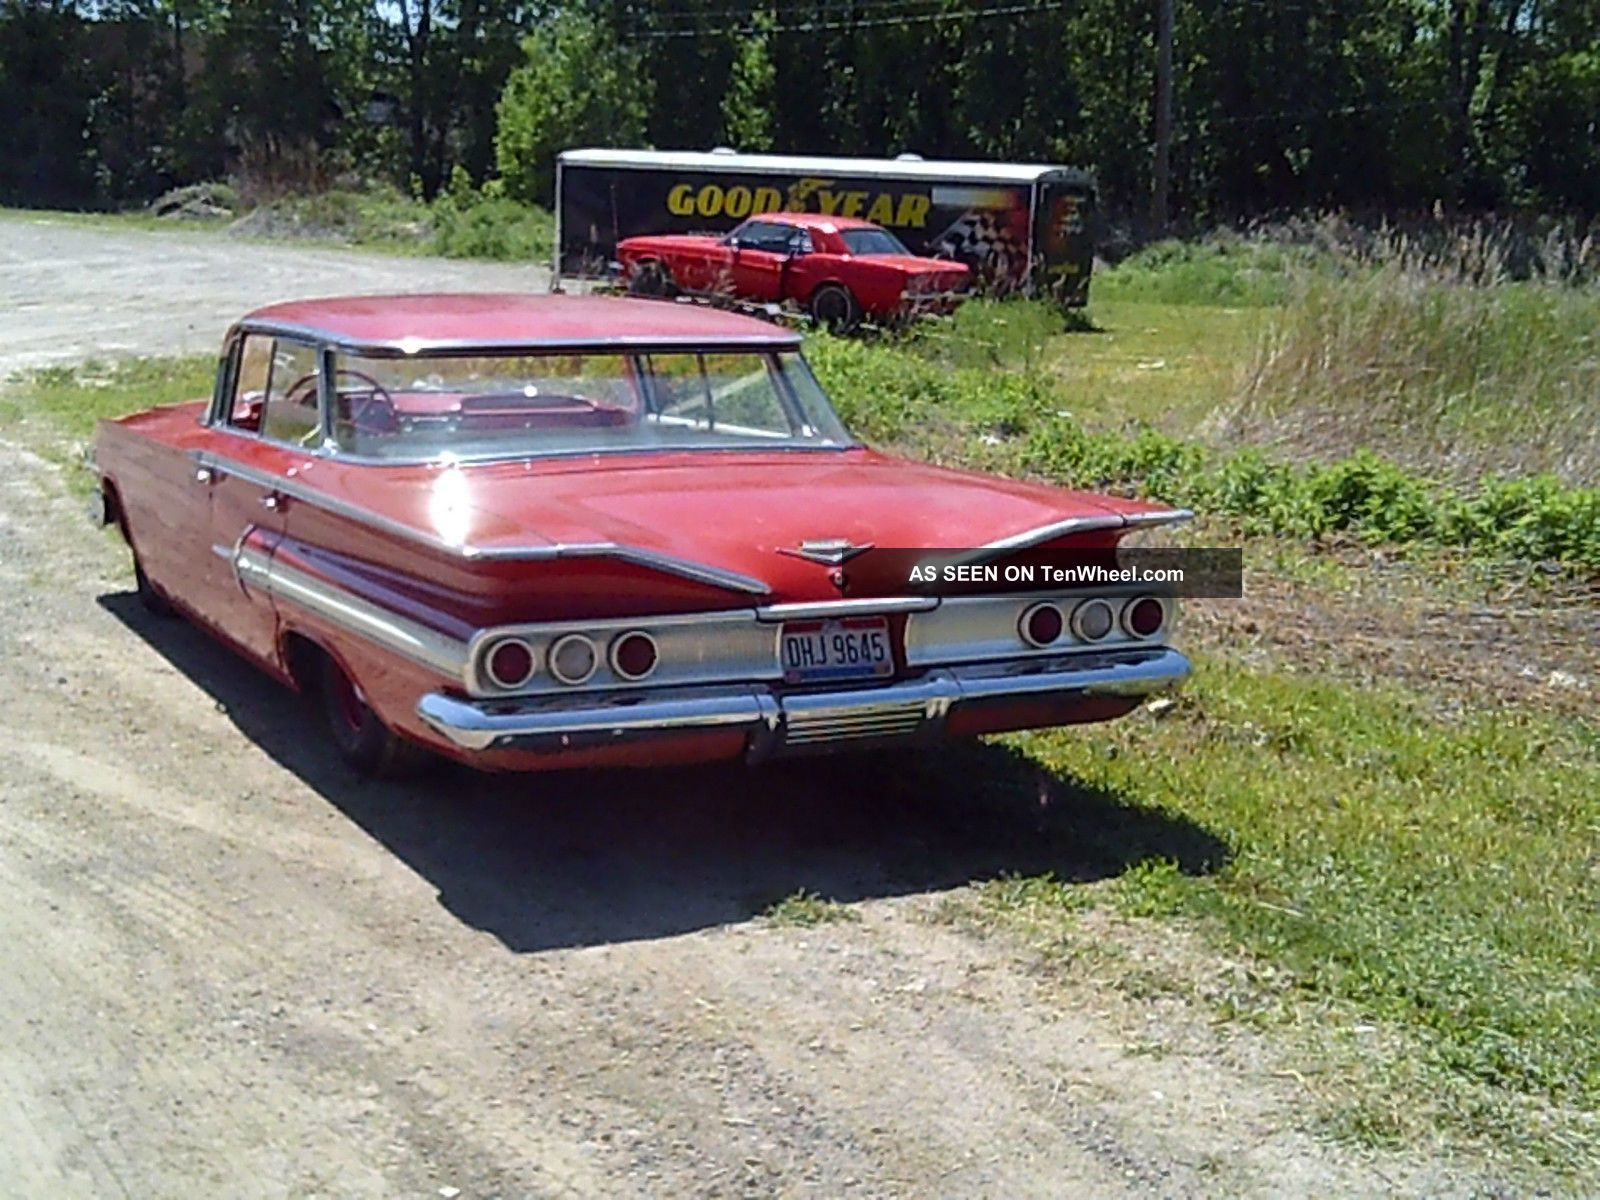 1966 chevy impala 4dr ht maintenance restoration of old vintage vehicles the material for new cogs casters gears pads could be cast polyamide whic